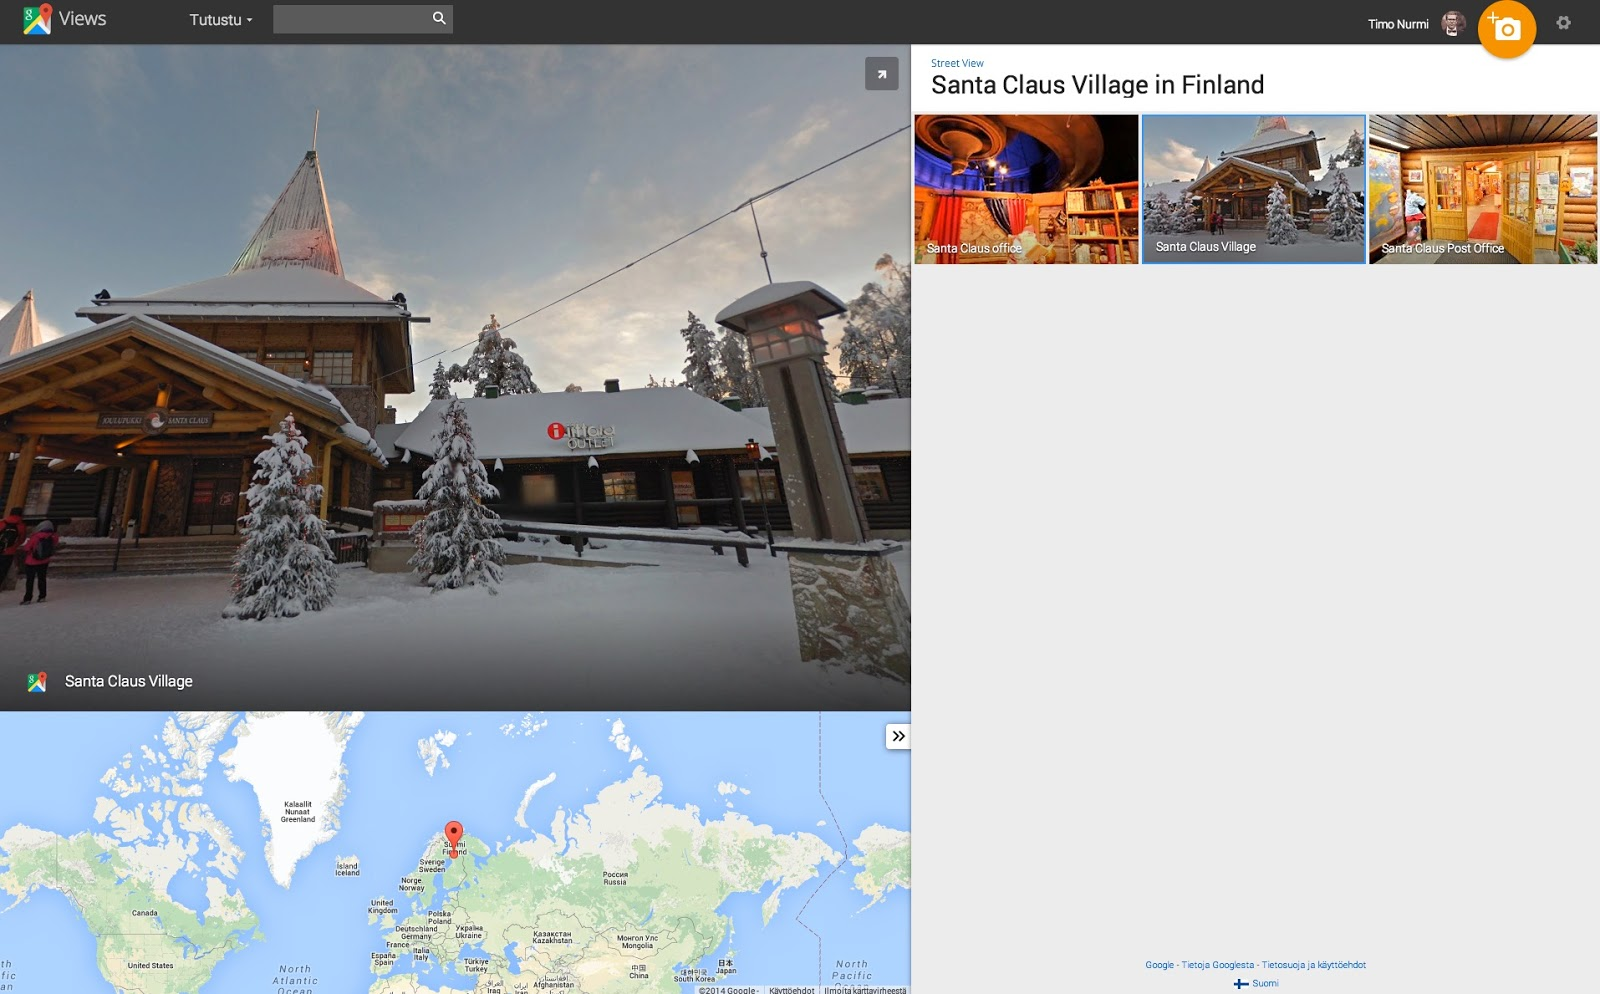 https://www.google.com/maps/views/u/0/streetview/santa-claus-village-in-finland